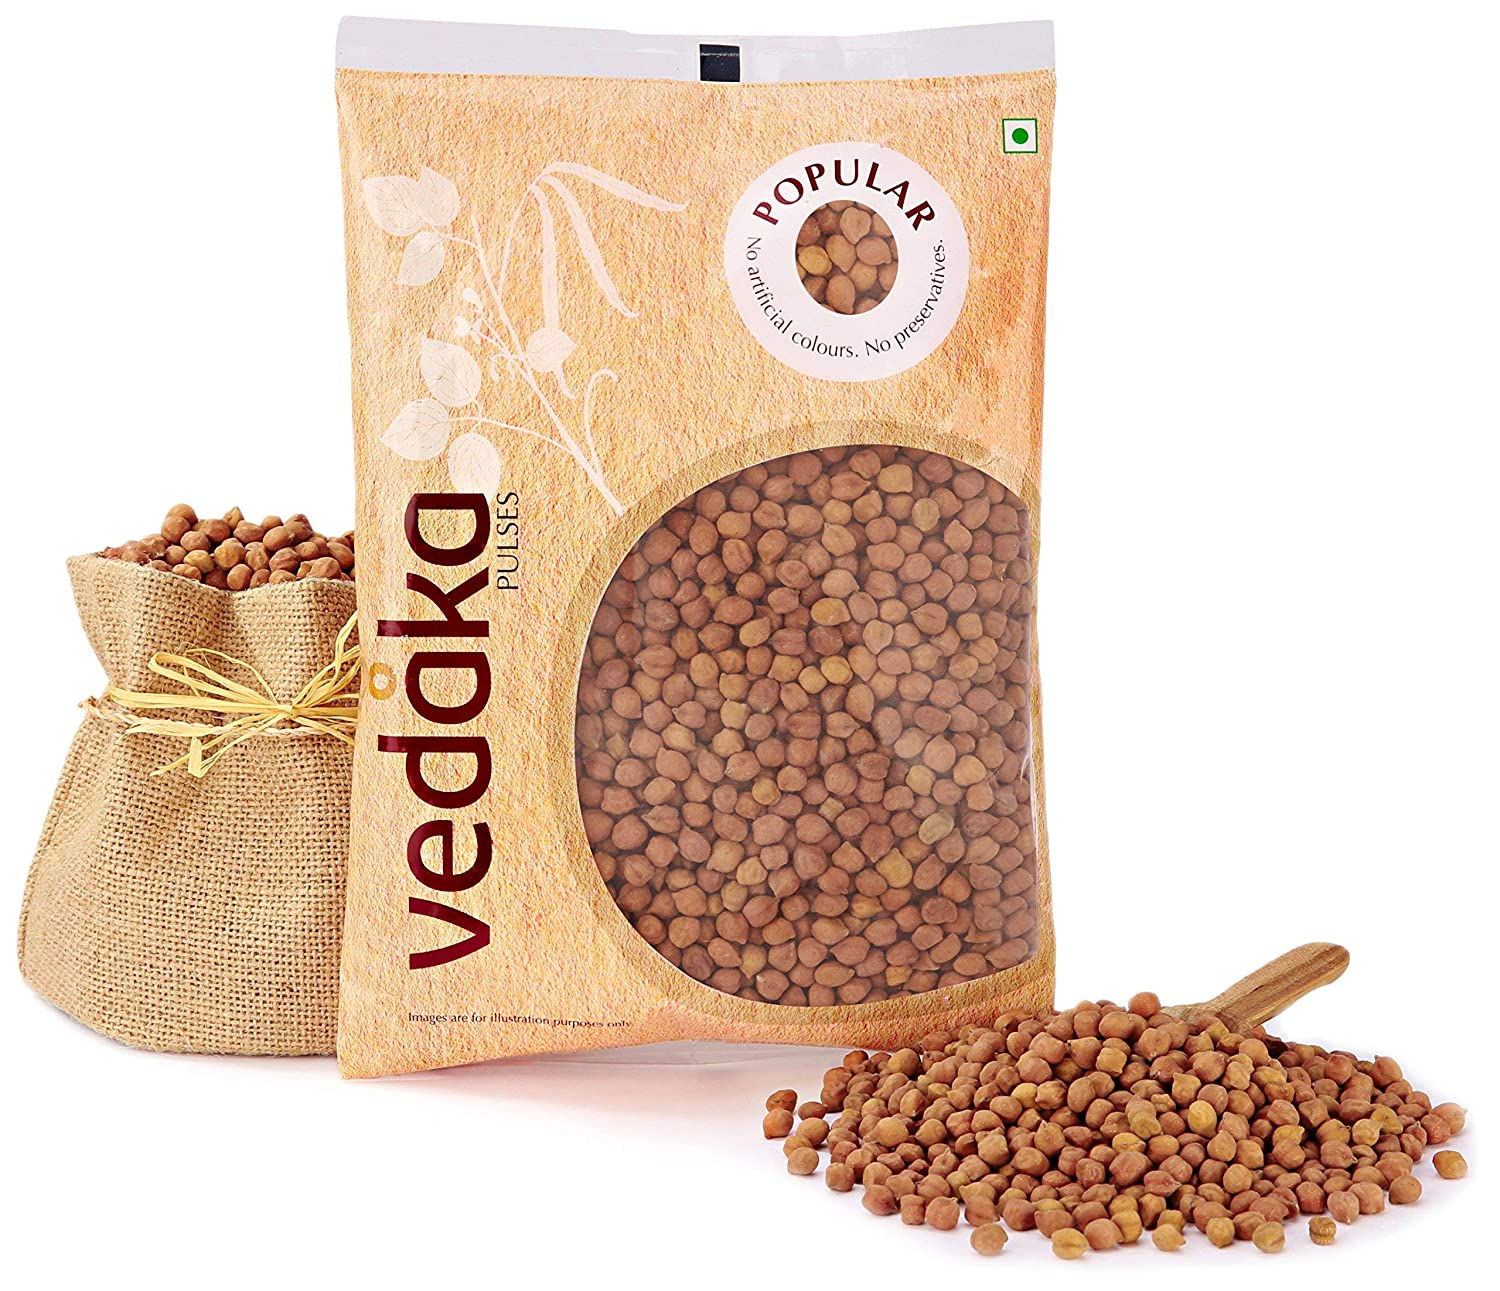 Vedaka Popular Black Chana, 1 kg